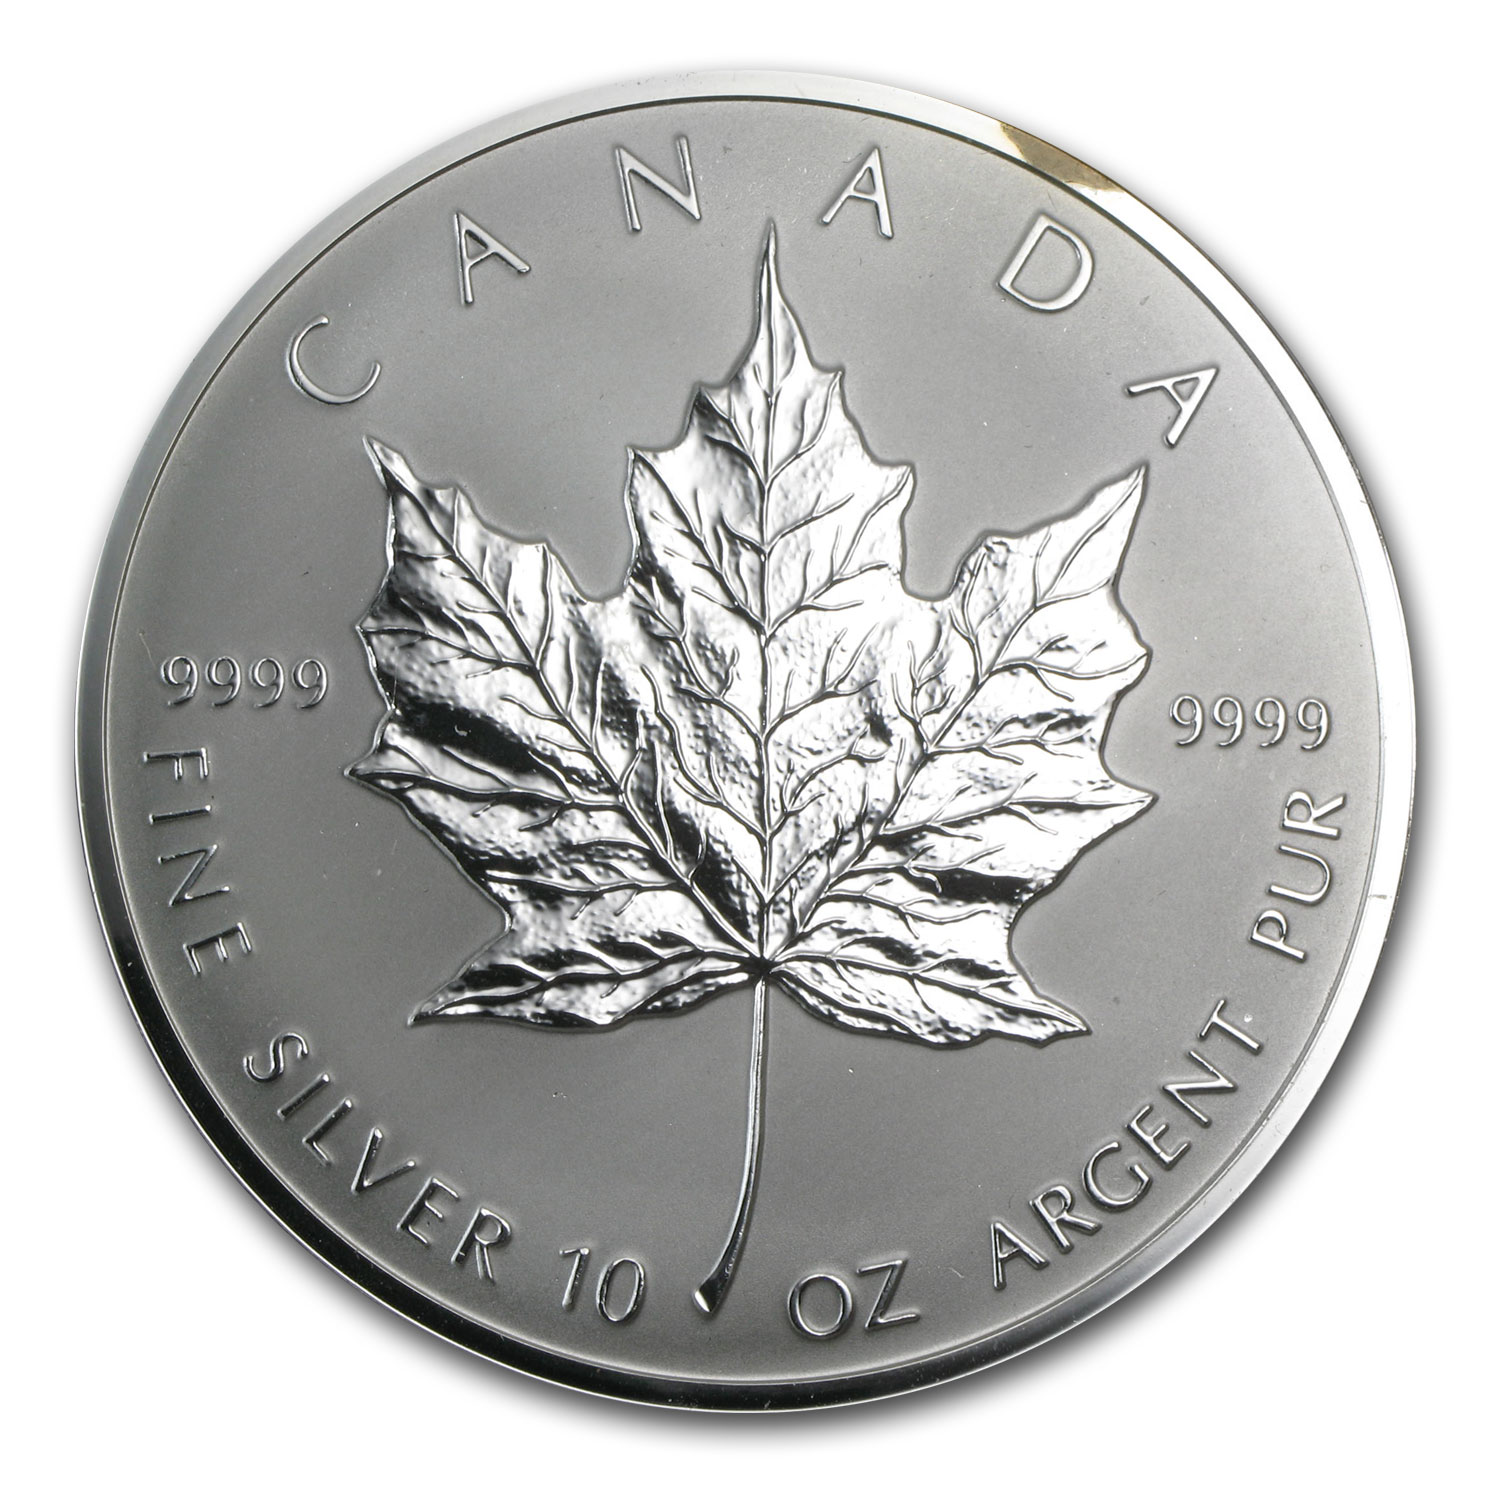 1998 Canada 10 oz Silver $50 Maple Leaf (10th Anniv, no box)